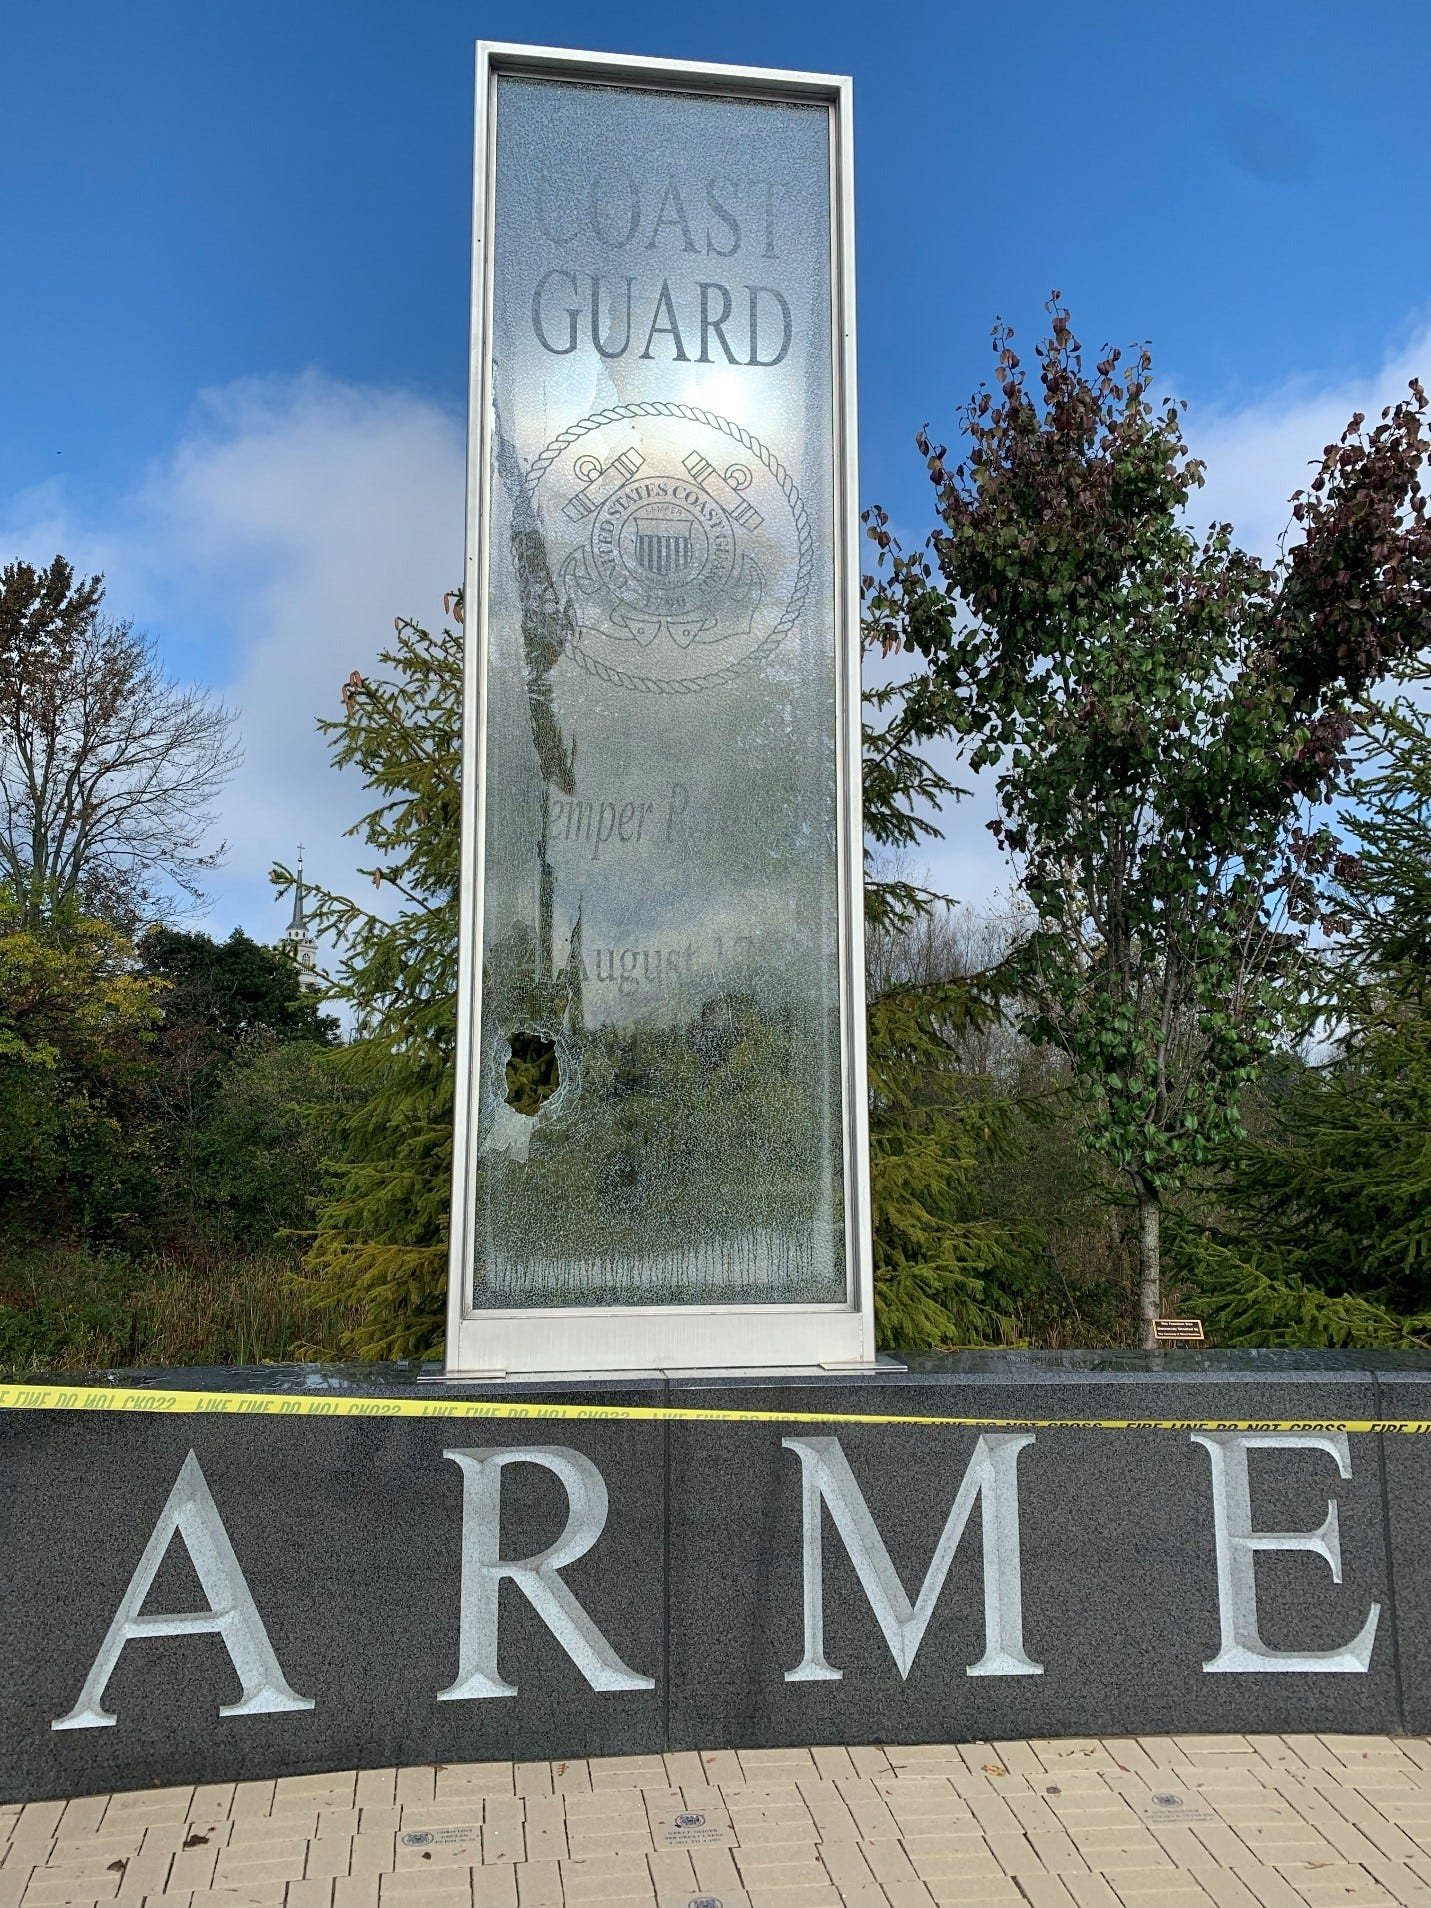 Veteran's Tribute in Oakland Twp. vandalized, police seeking tips to find who did it